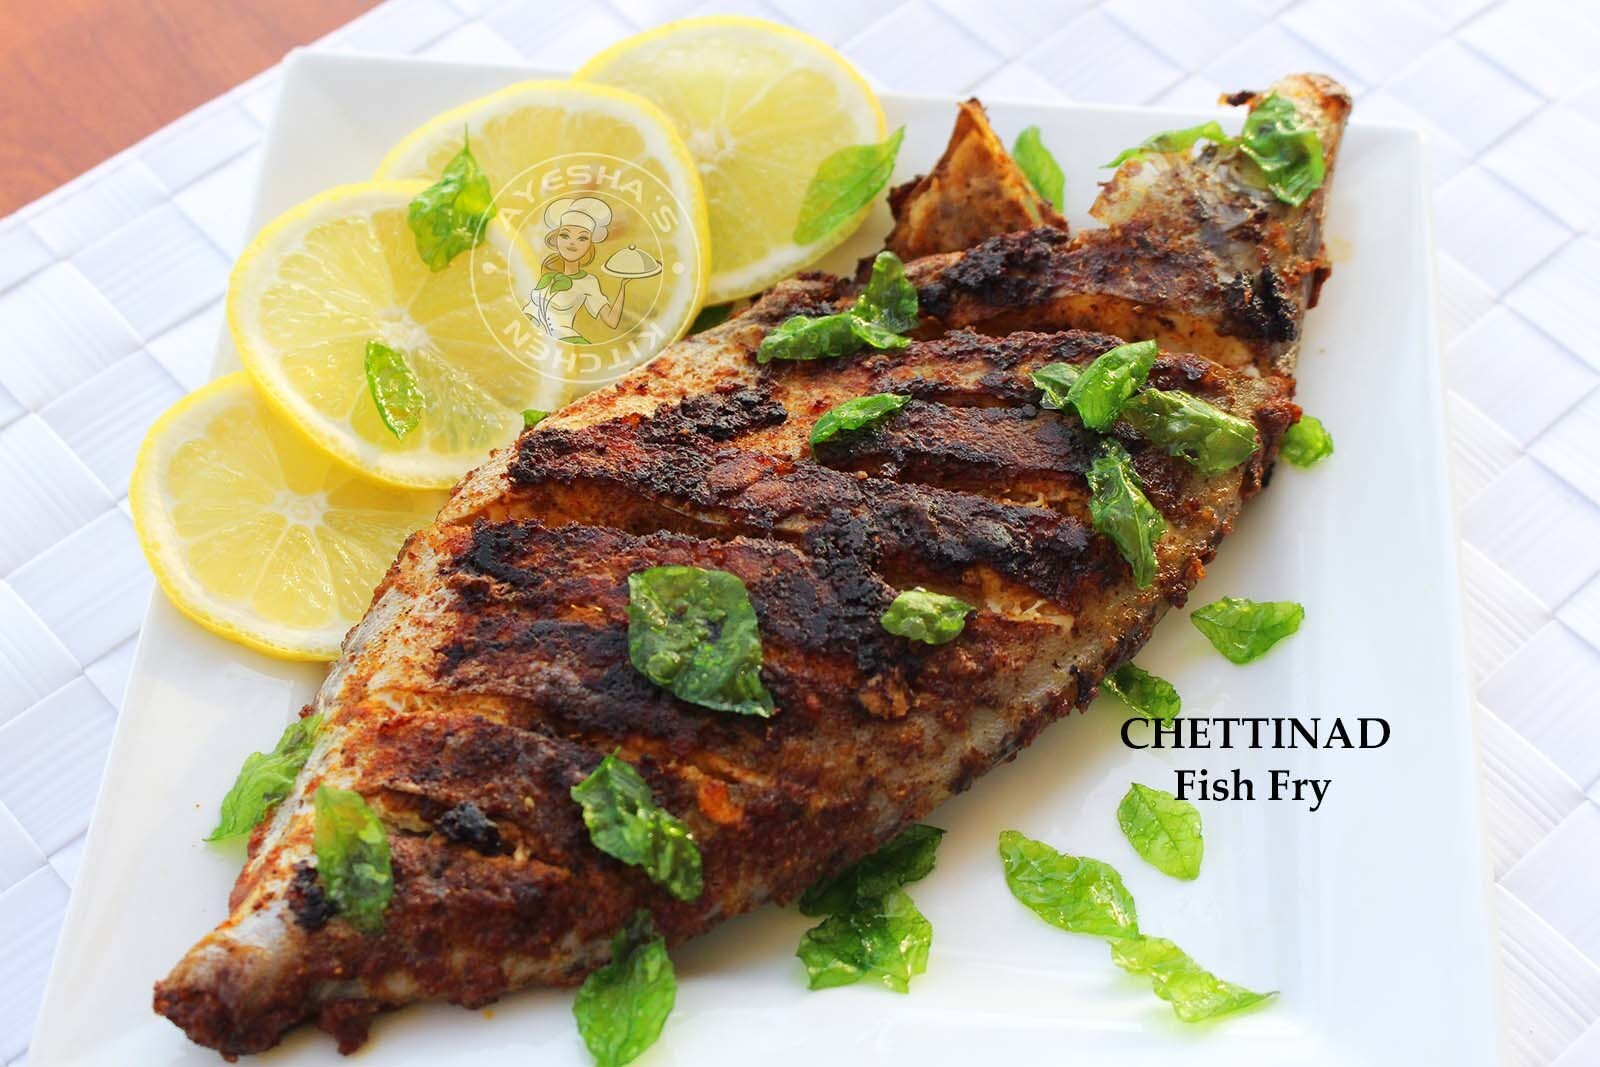 FISH FRY RECIPE - CHETTINAD FISH FRY